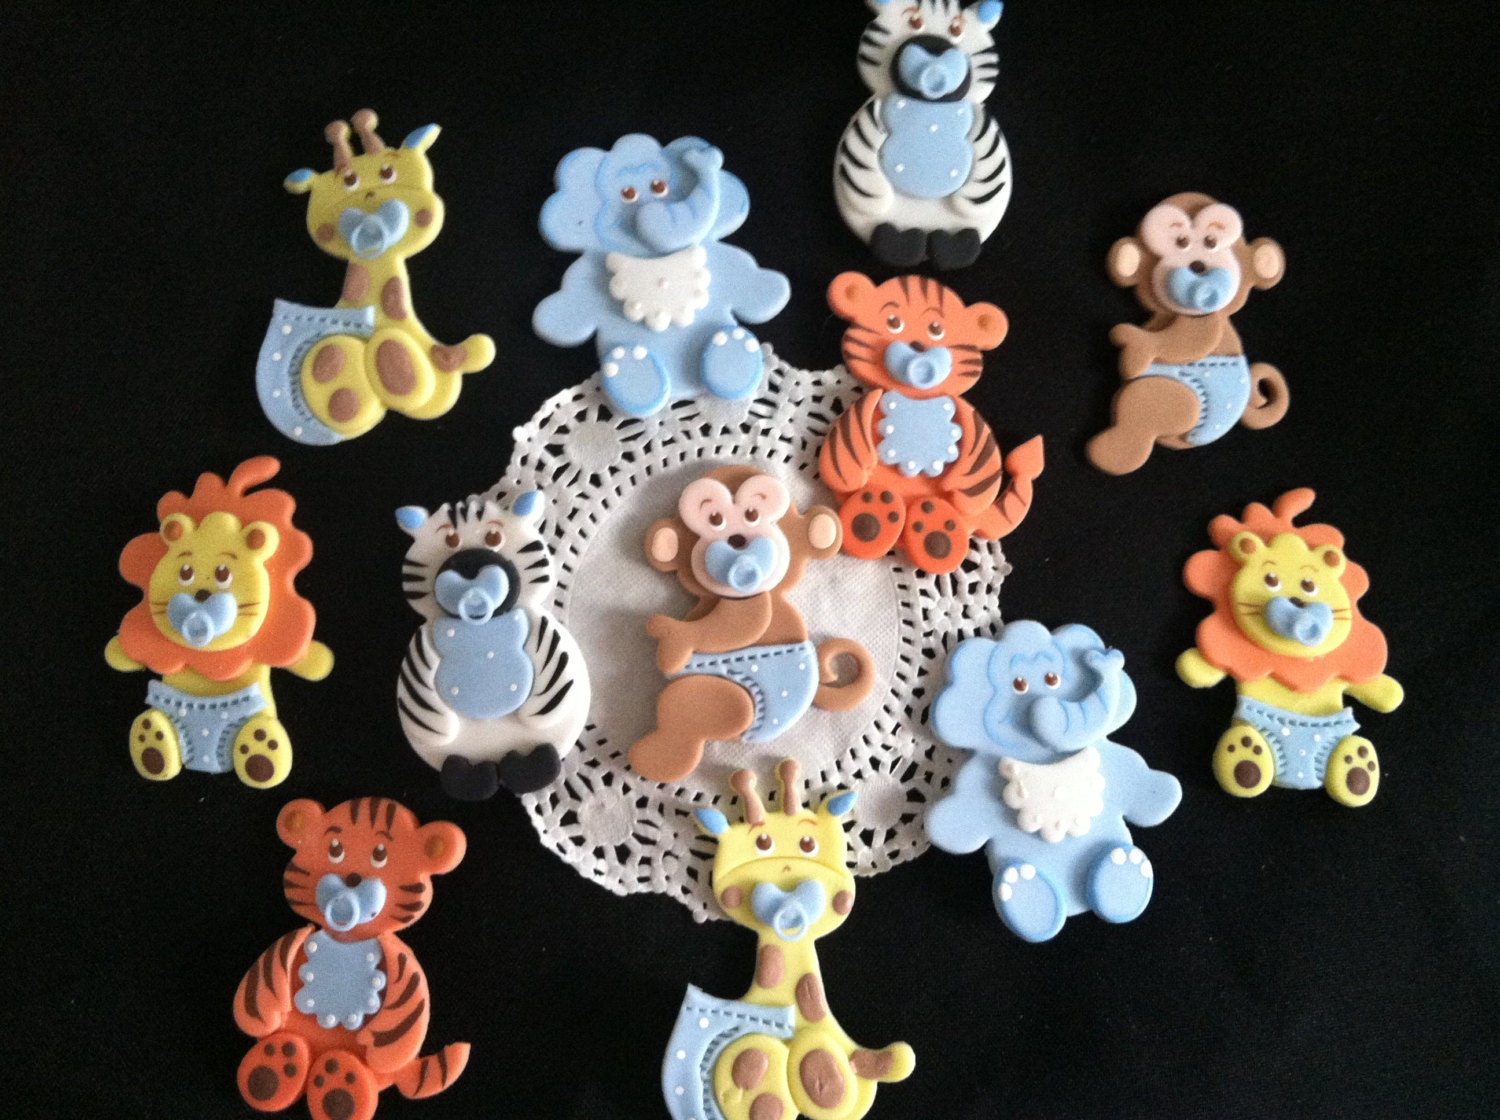 Jungle Cake Toppers. Fun Express 12 Count Vinyl Zoo Animal ...